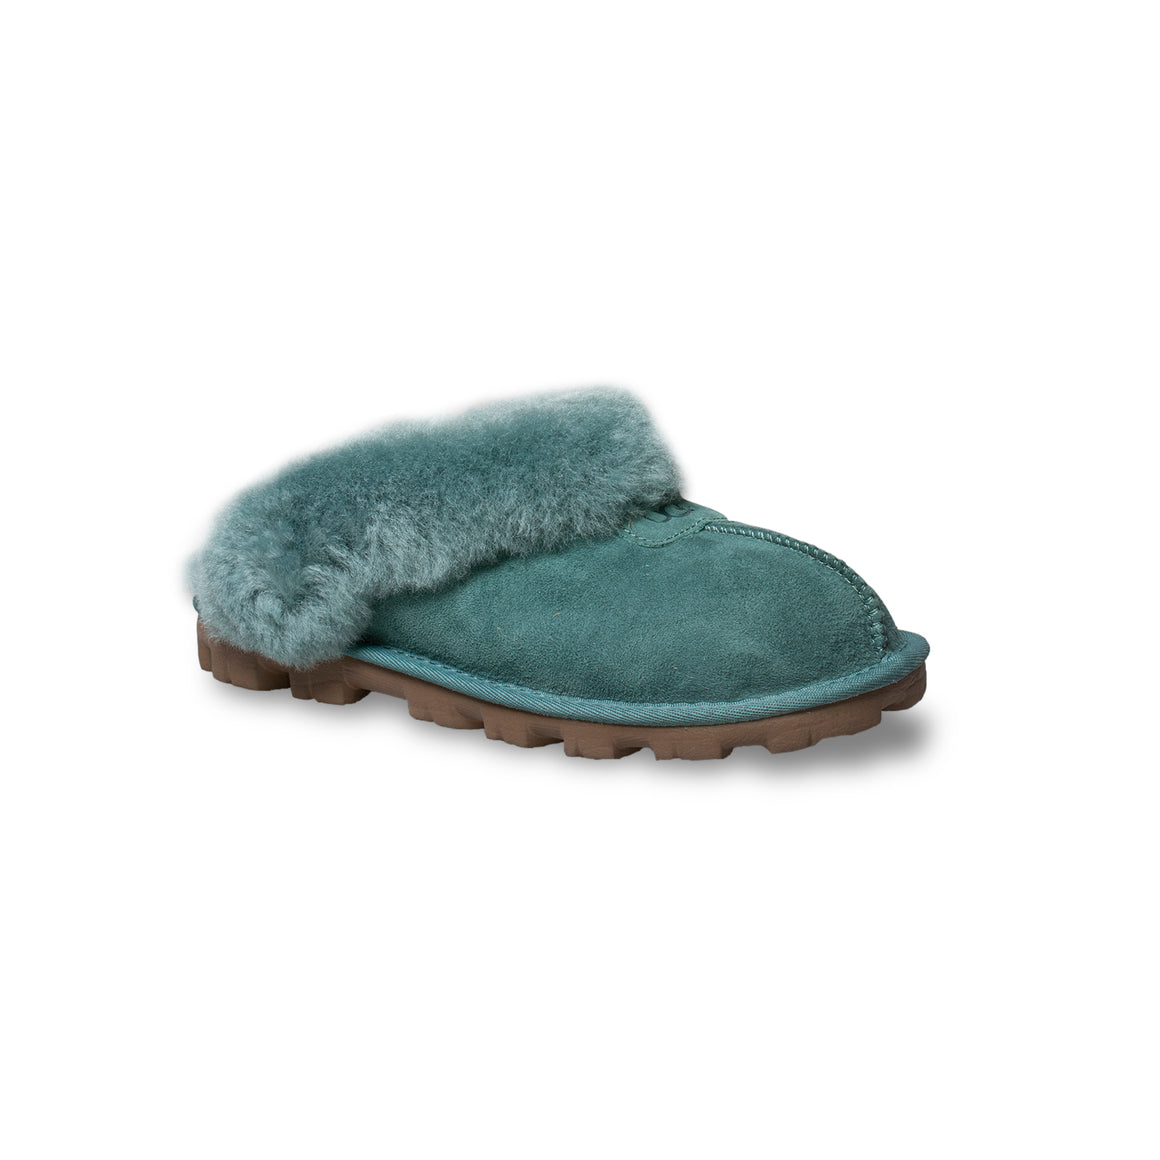 UGG Coquette Atlantic Slippers - Women's